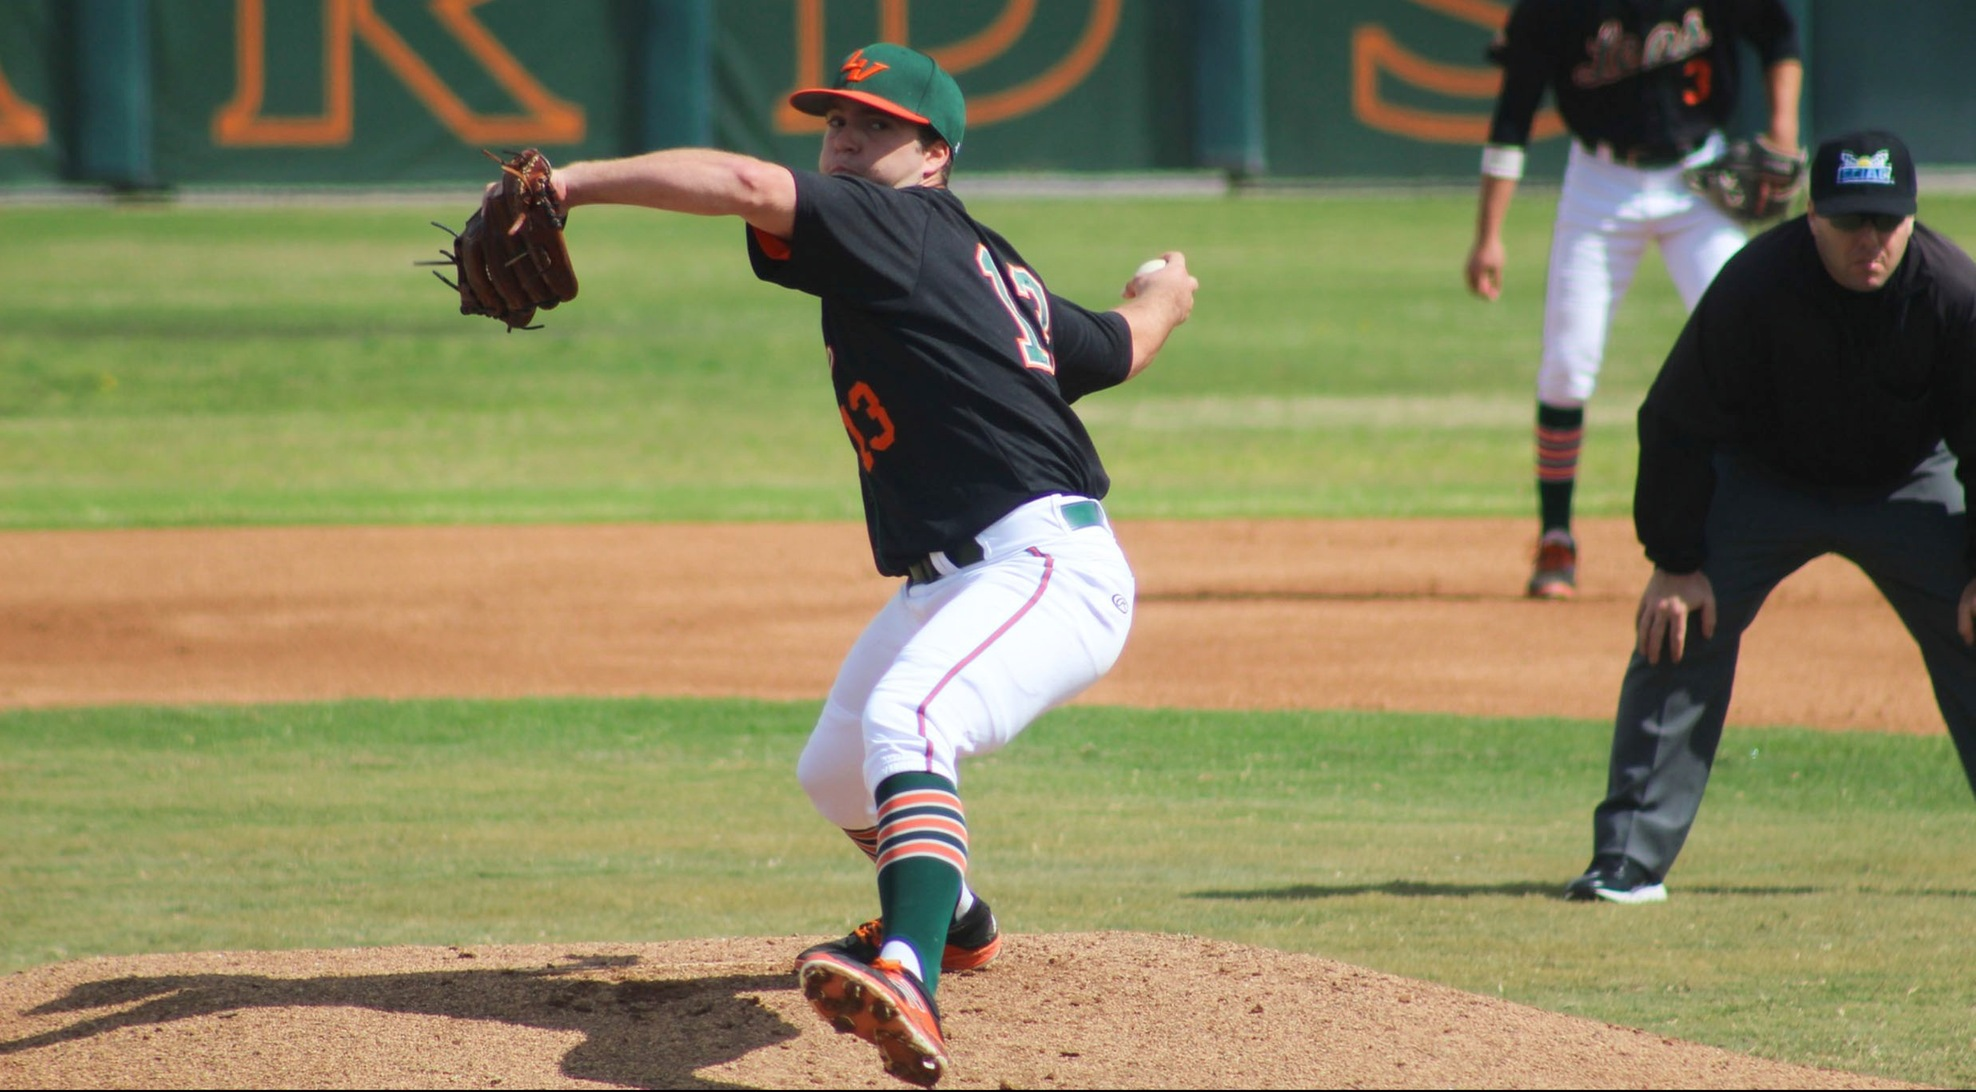 Norman deals, Leopards beat Oxy twice